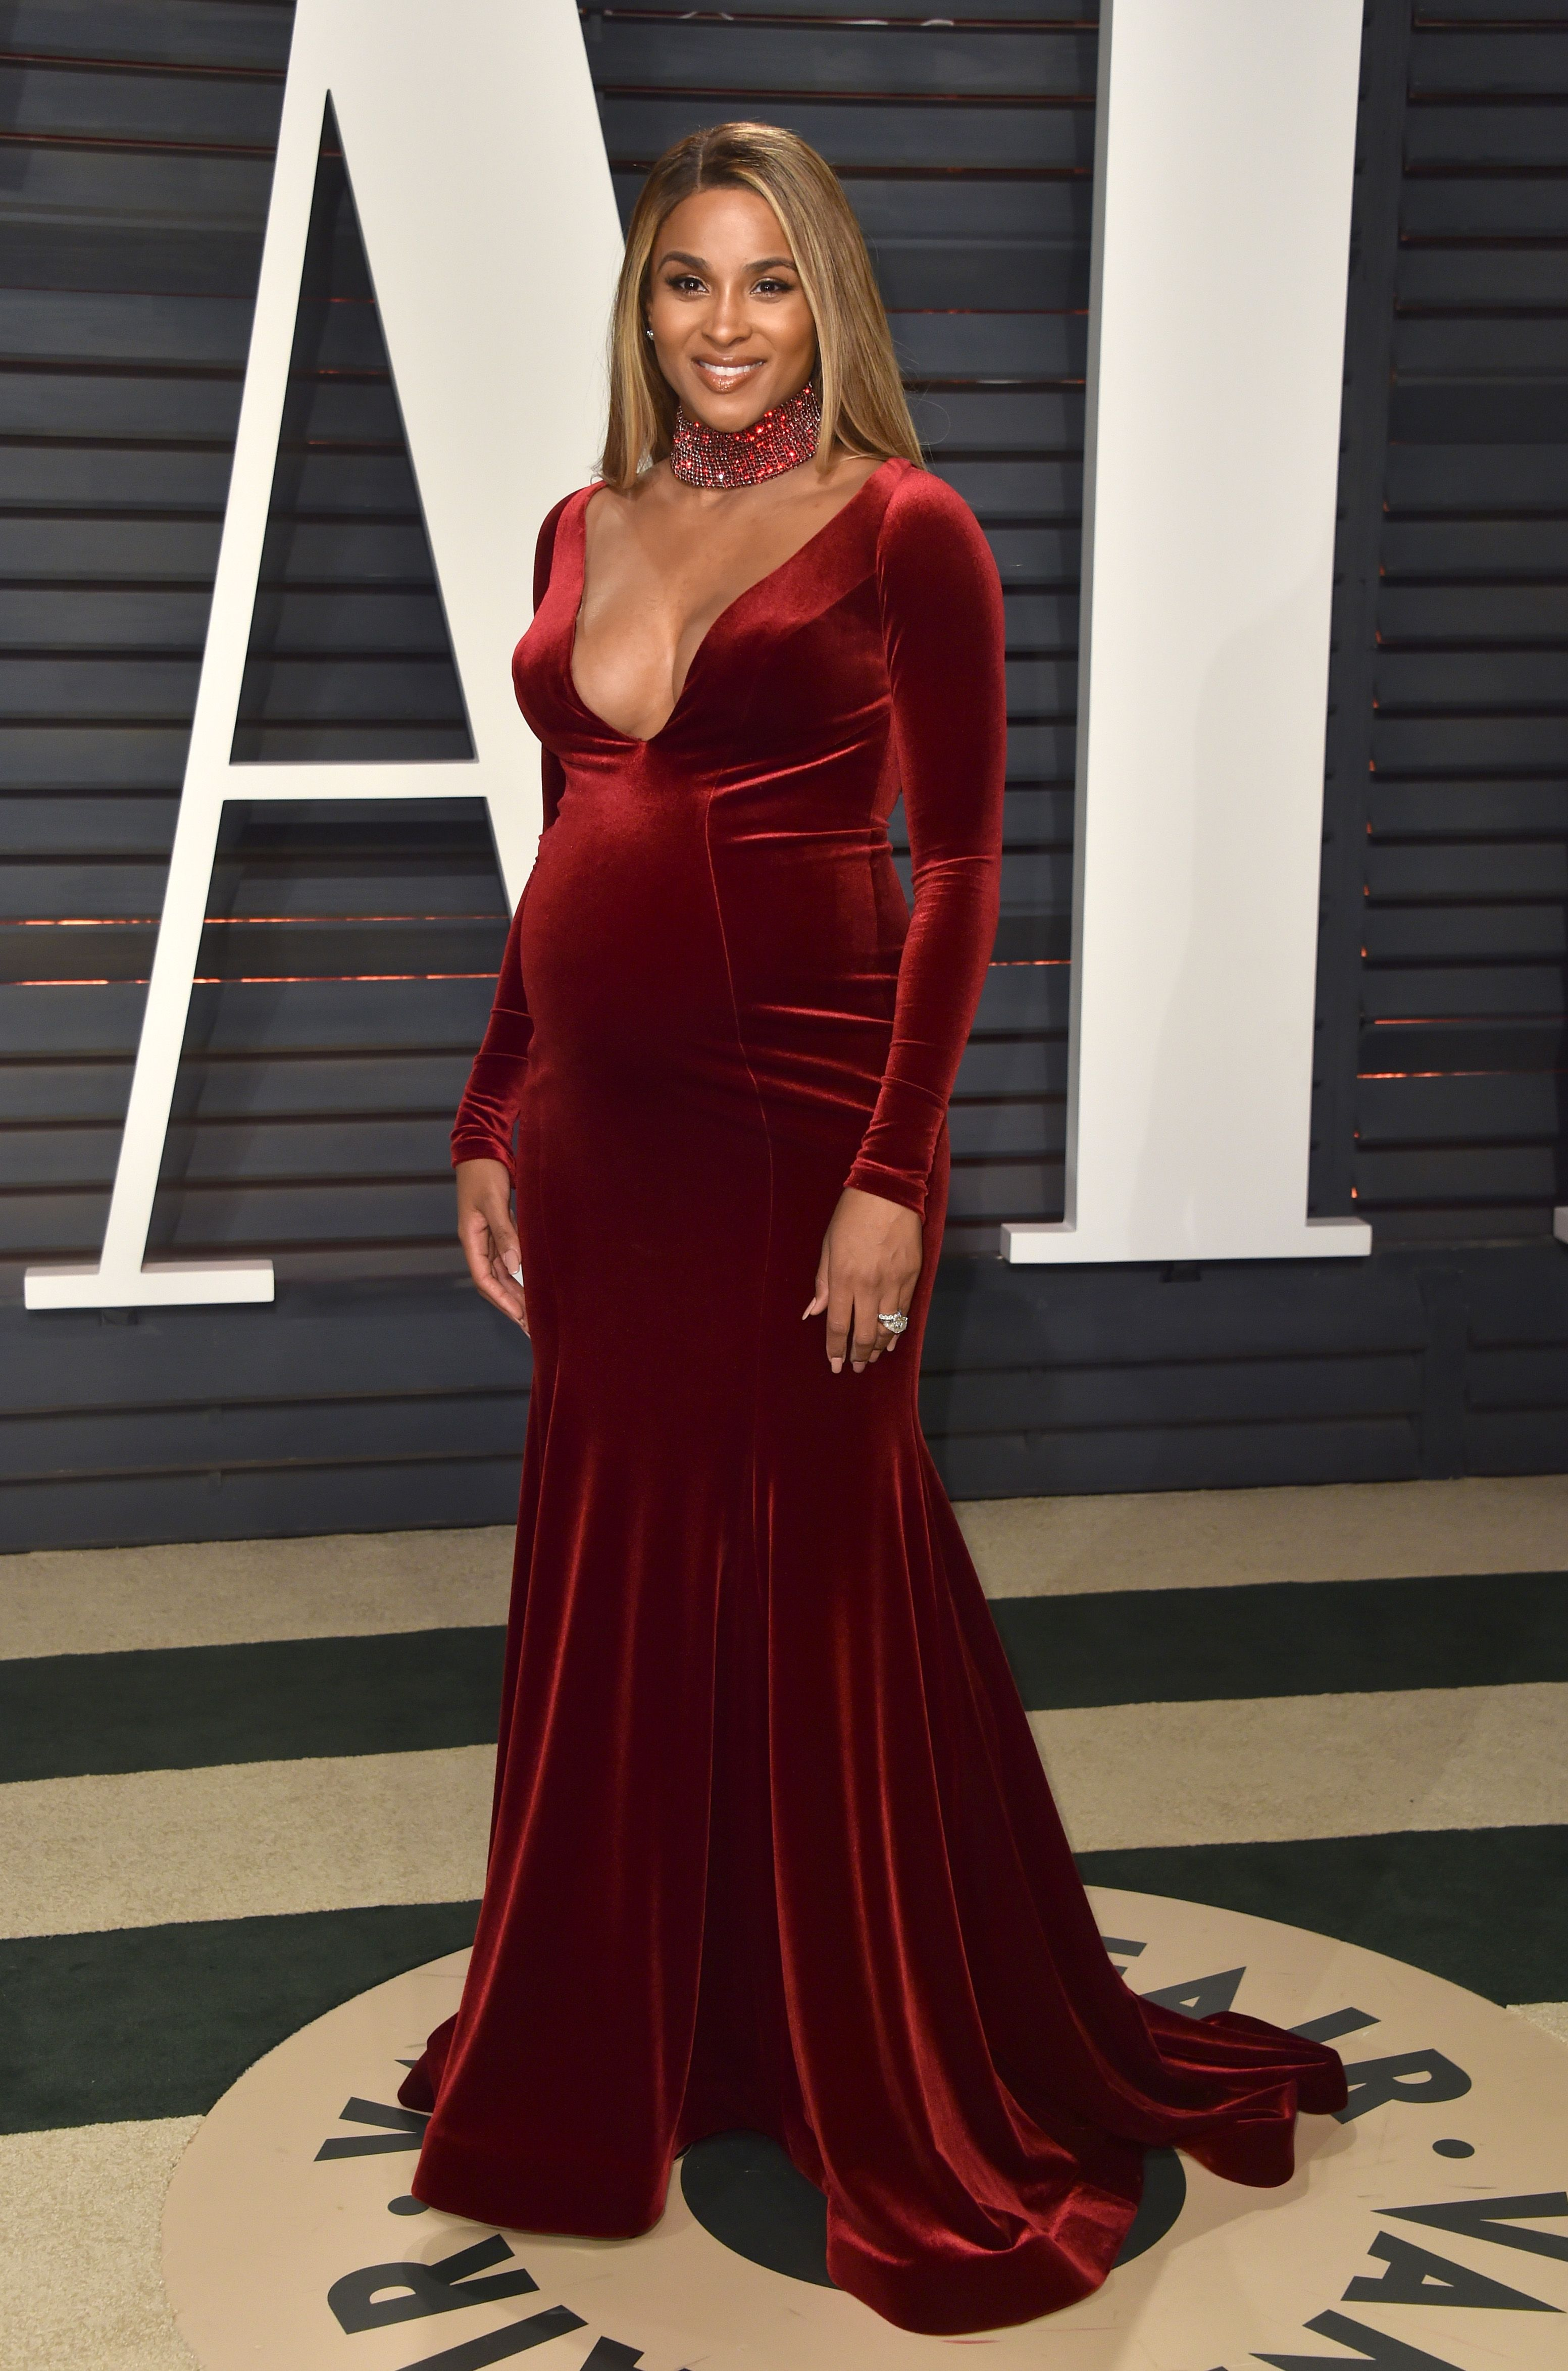 Stylish Pregnant Celebrities: Maternity Fashion On The Red Carpet